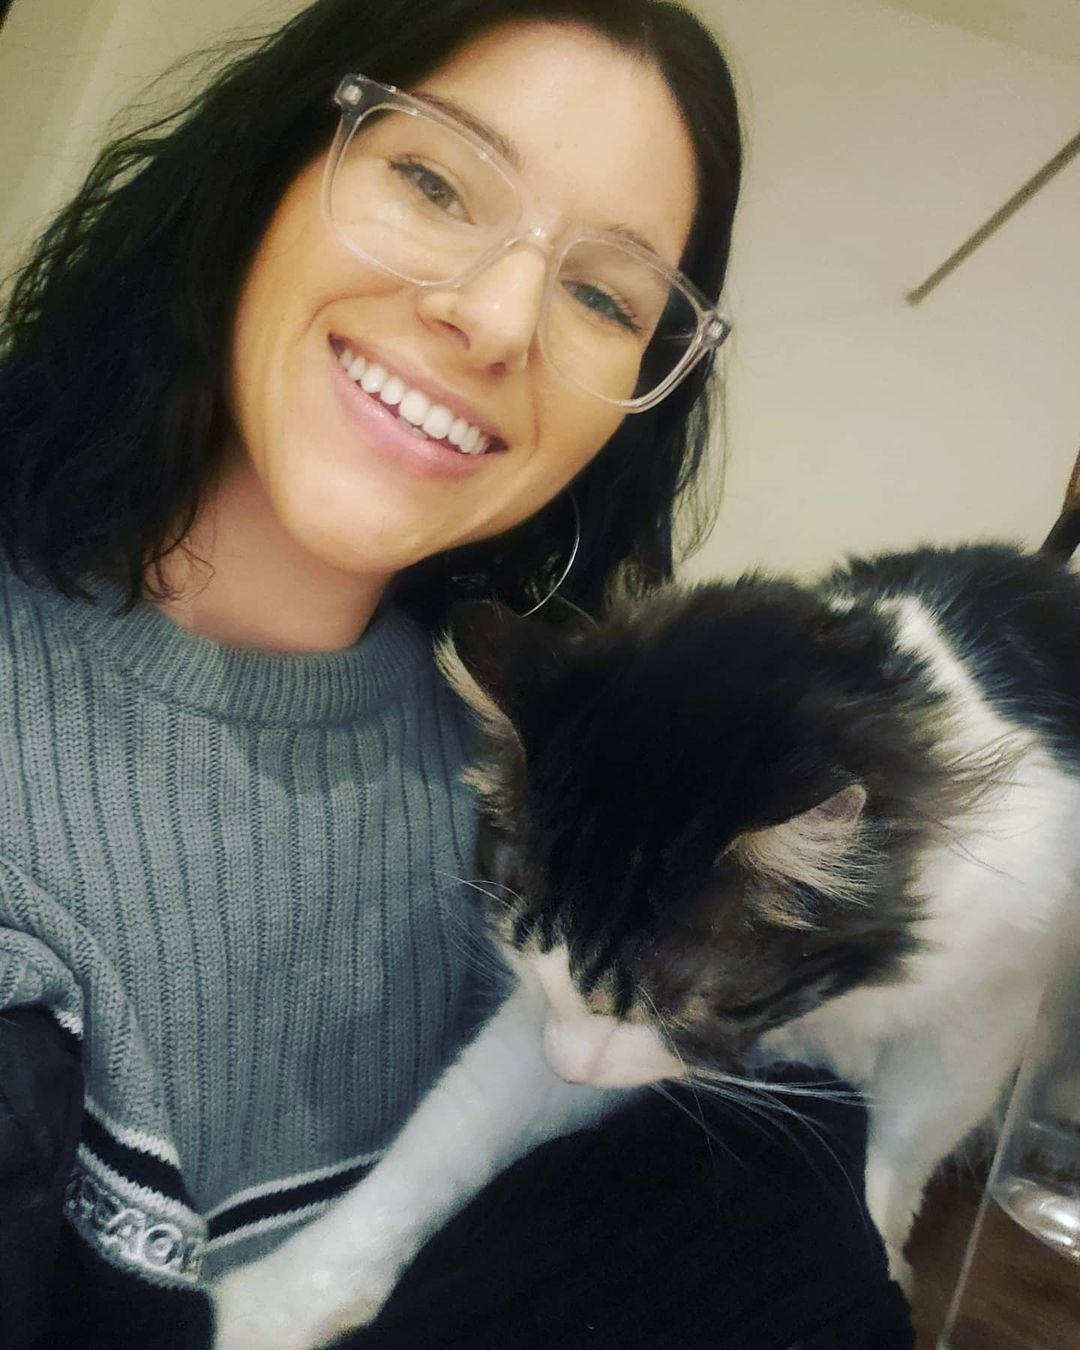 Vanessa smiling, wearing glasses, looking into camera, head slightly tilted, black/grey and white cat coming onto her lap